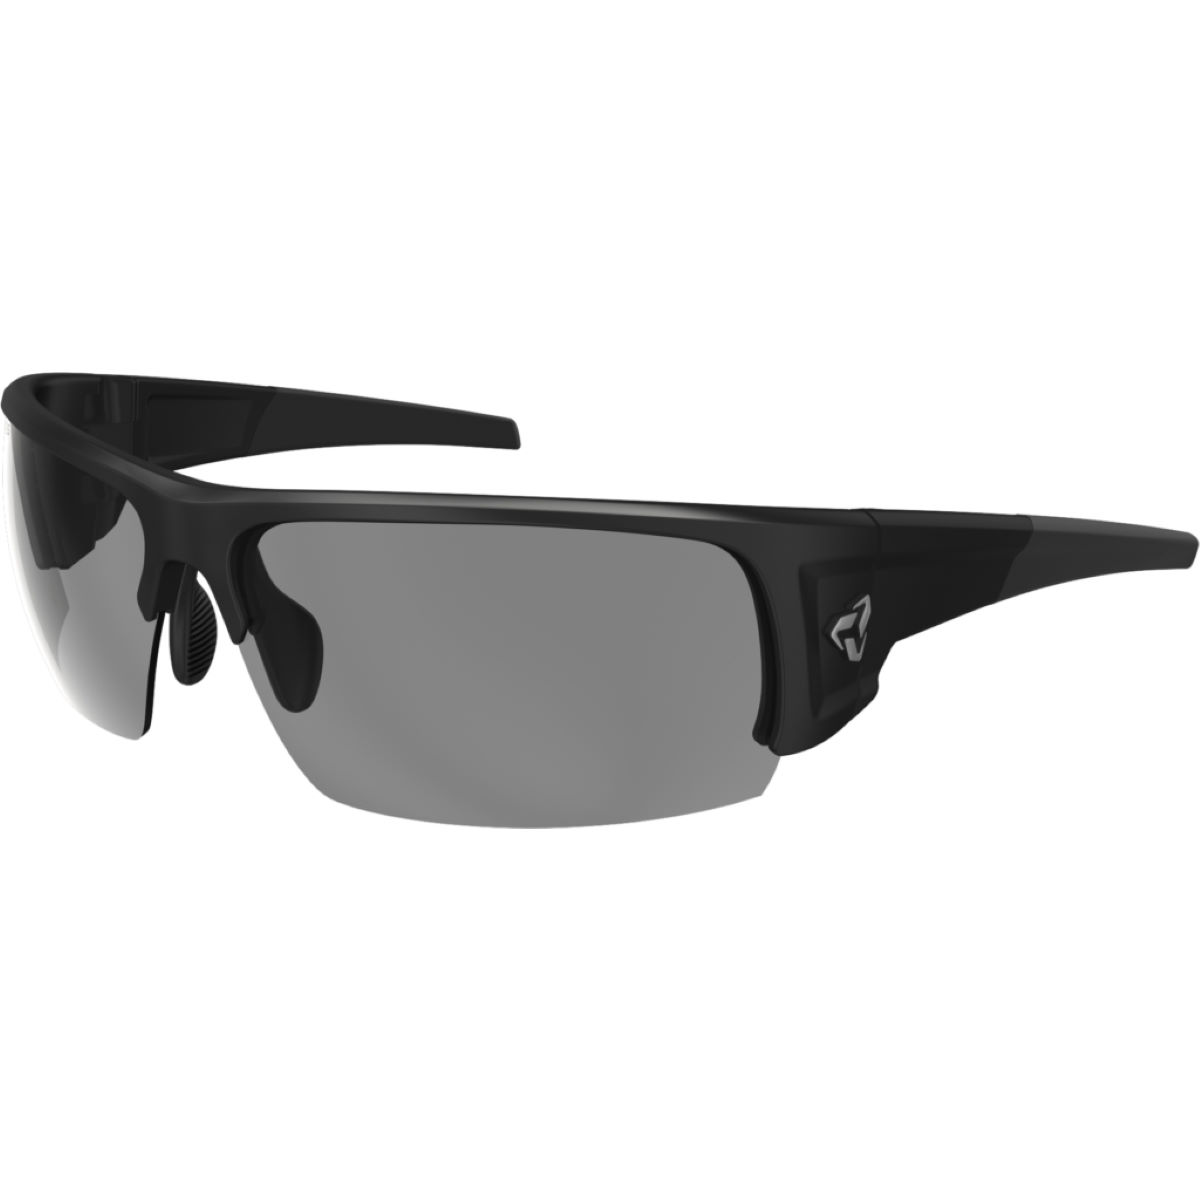 Ryders Eyewear Caliber Velo-Polar Anti-Fog Sunglasses - Gafas de sol